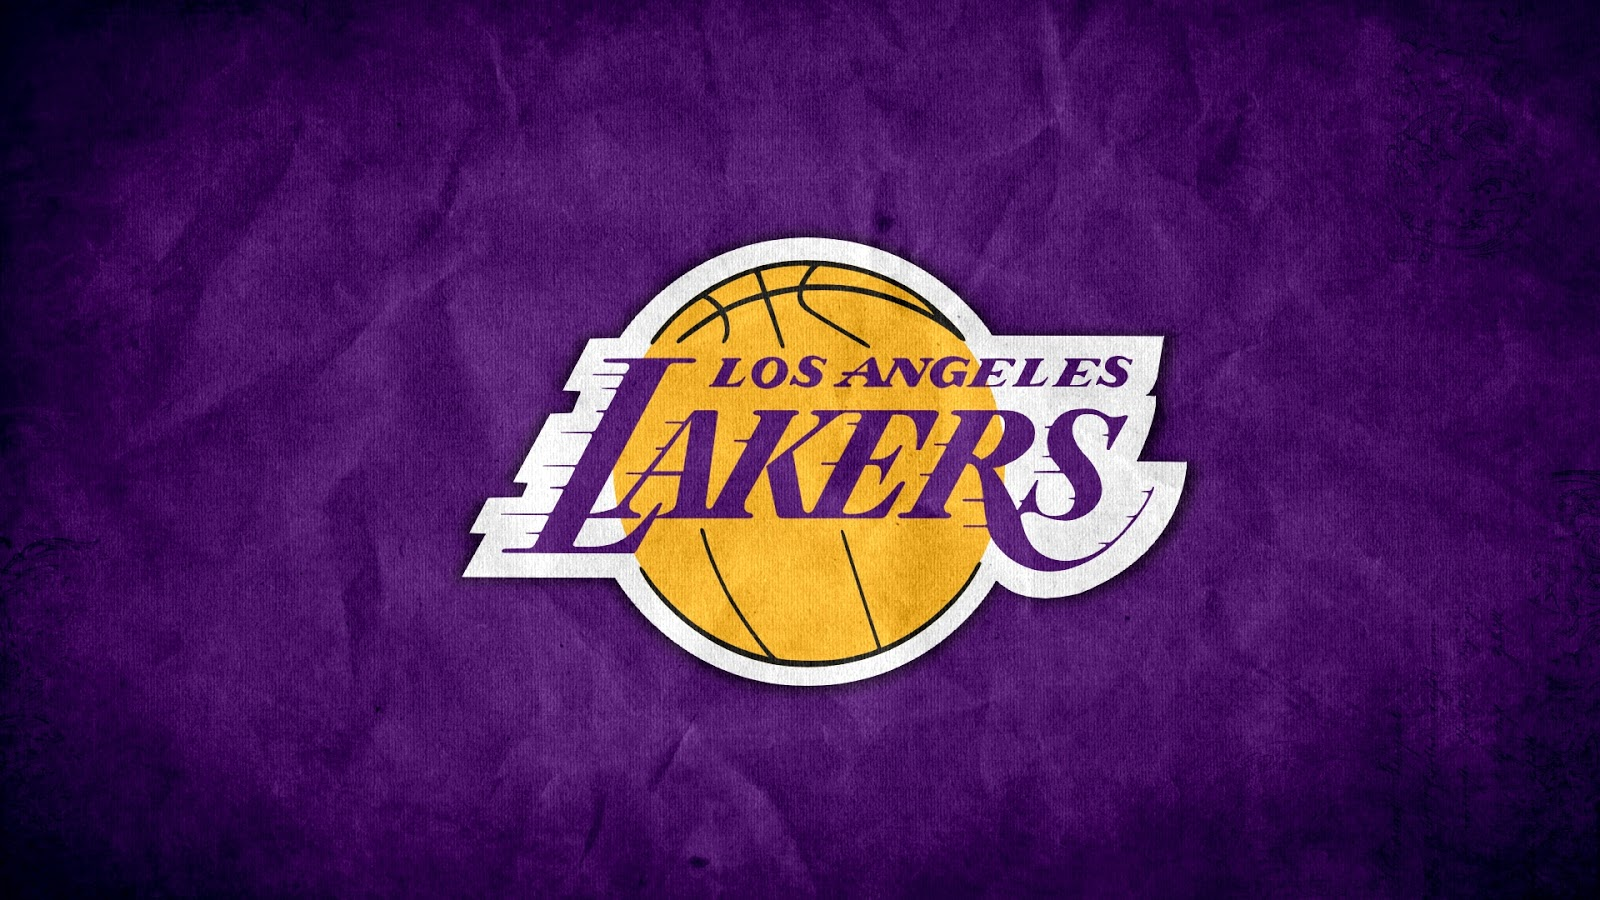 Los Angeles Lakers Logo >> Free Wallpapers by Valdazzar: Los Angeles Lakers Wallpapers